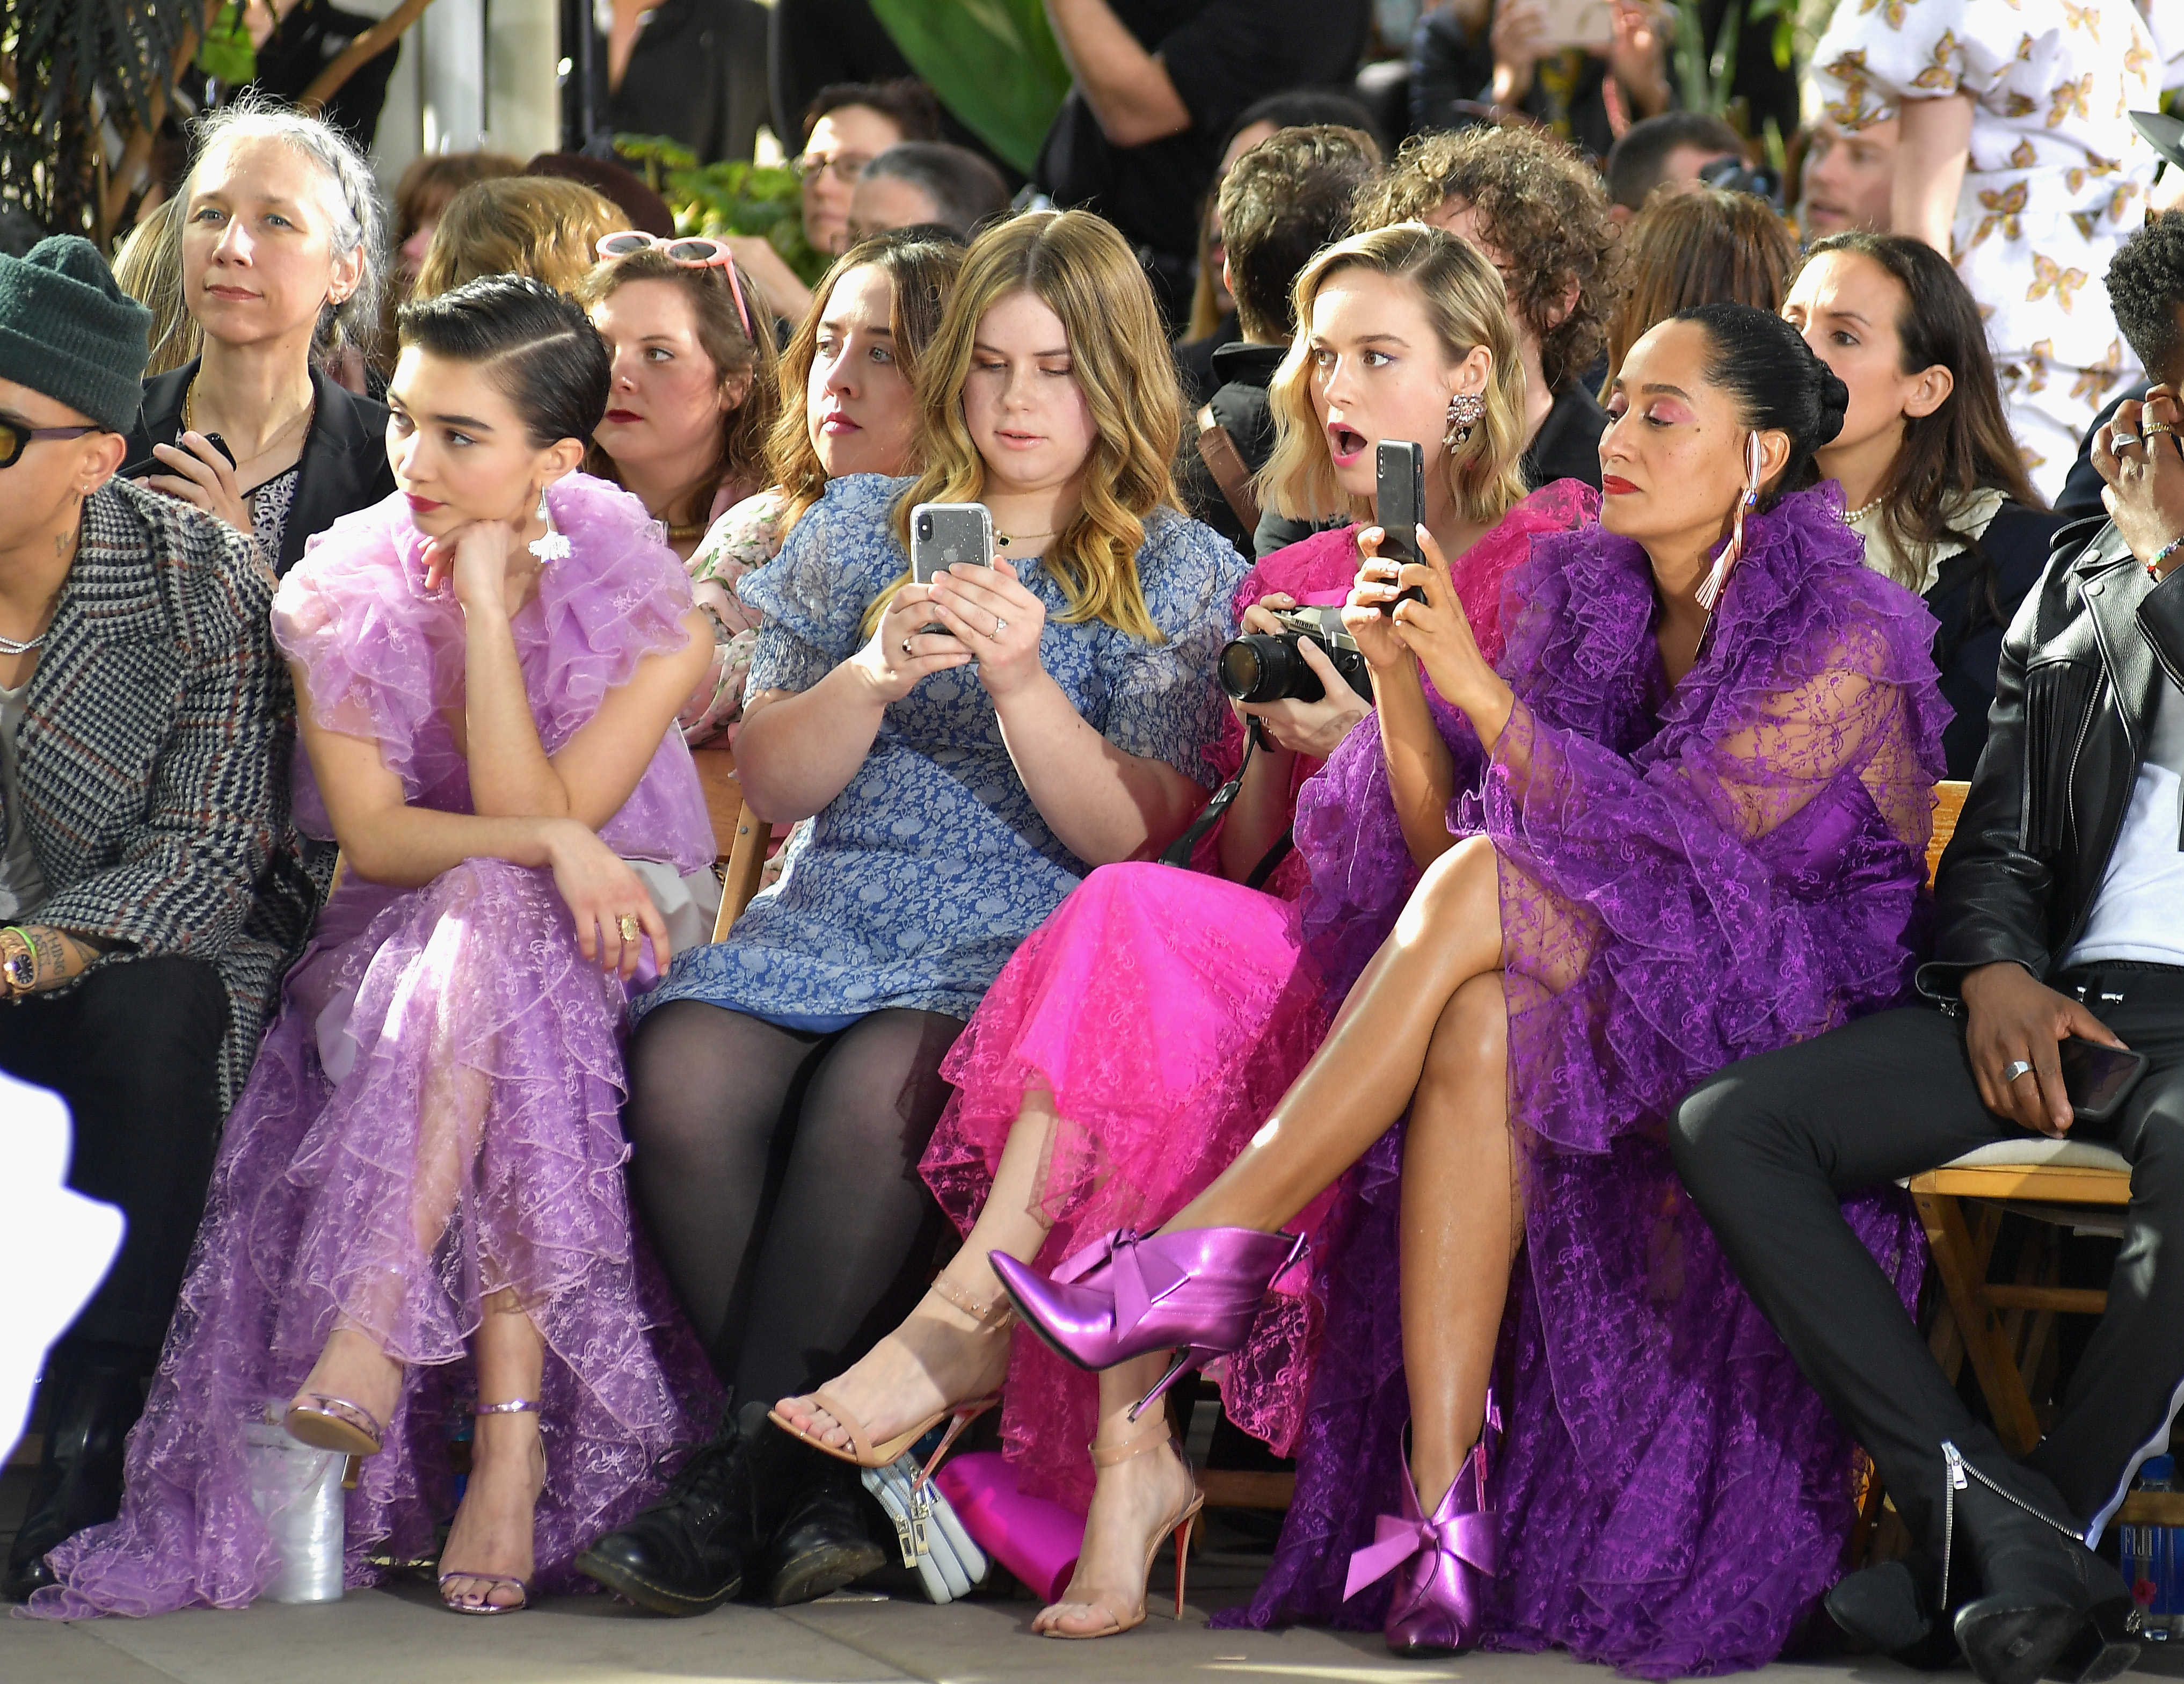 gettyimages 1094177606 Tracee Ellis Ross, Brie Larson and Rowan Blanchard Were Squad Goals at the Rodarte Show